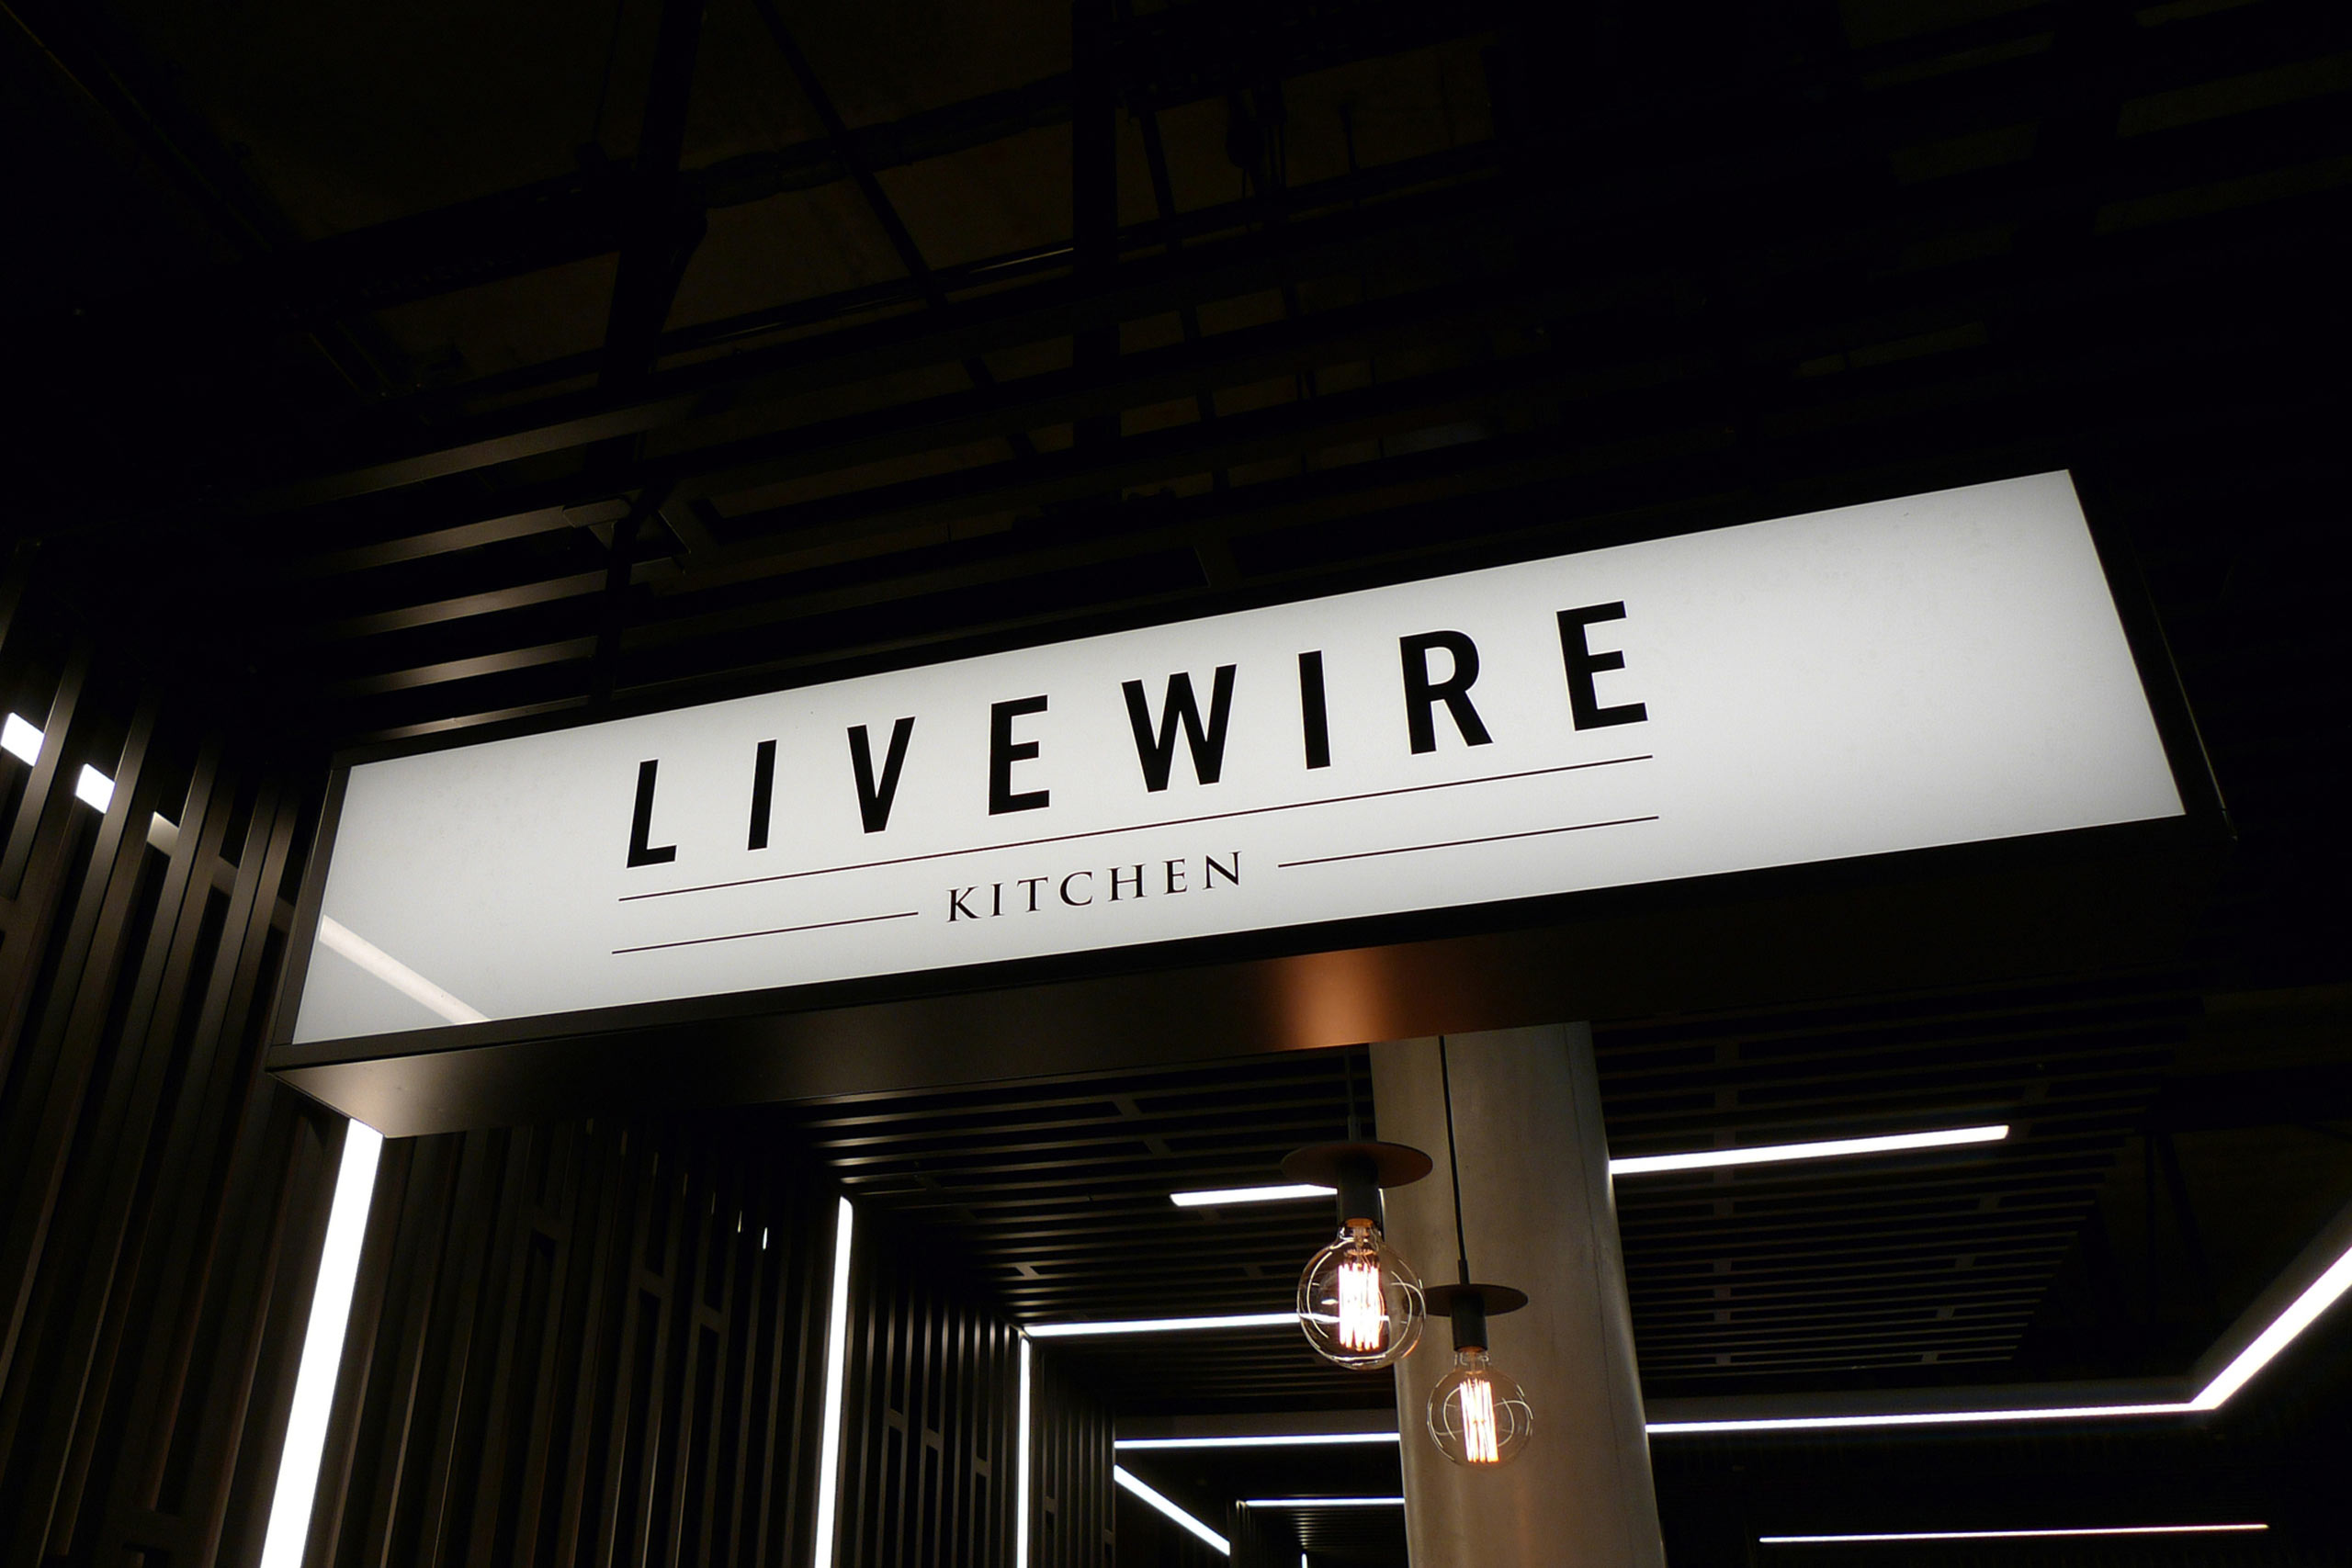 Lightbox design for livewire kitchen